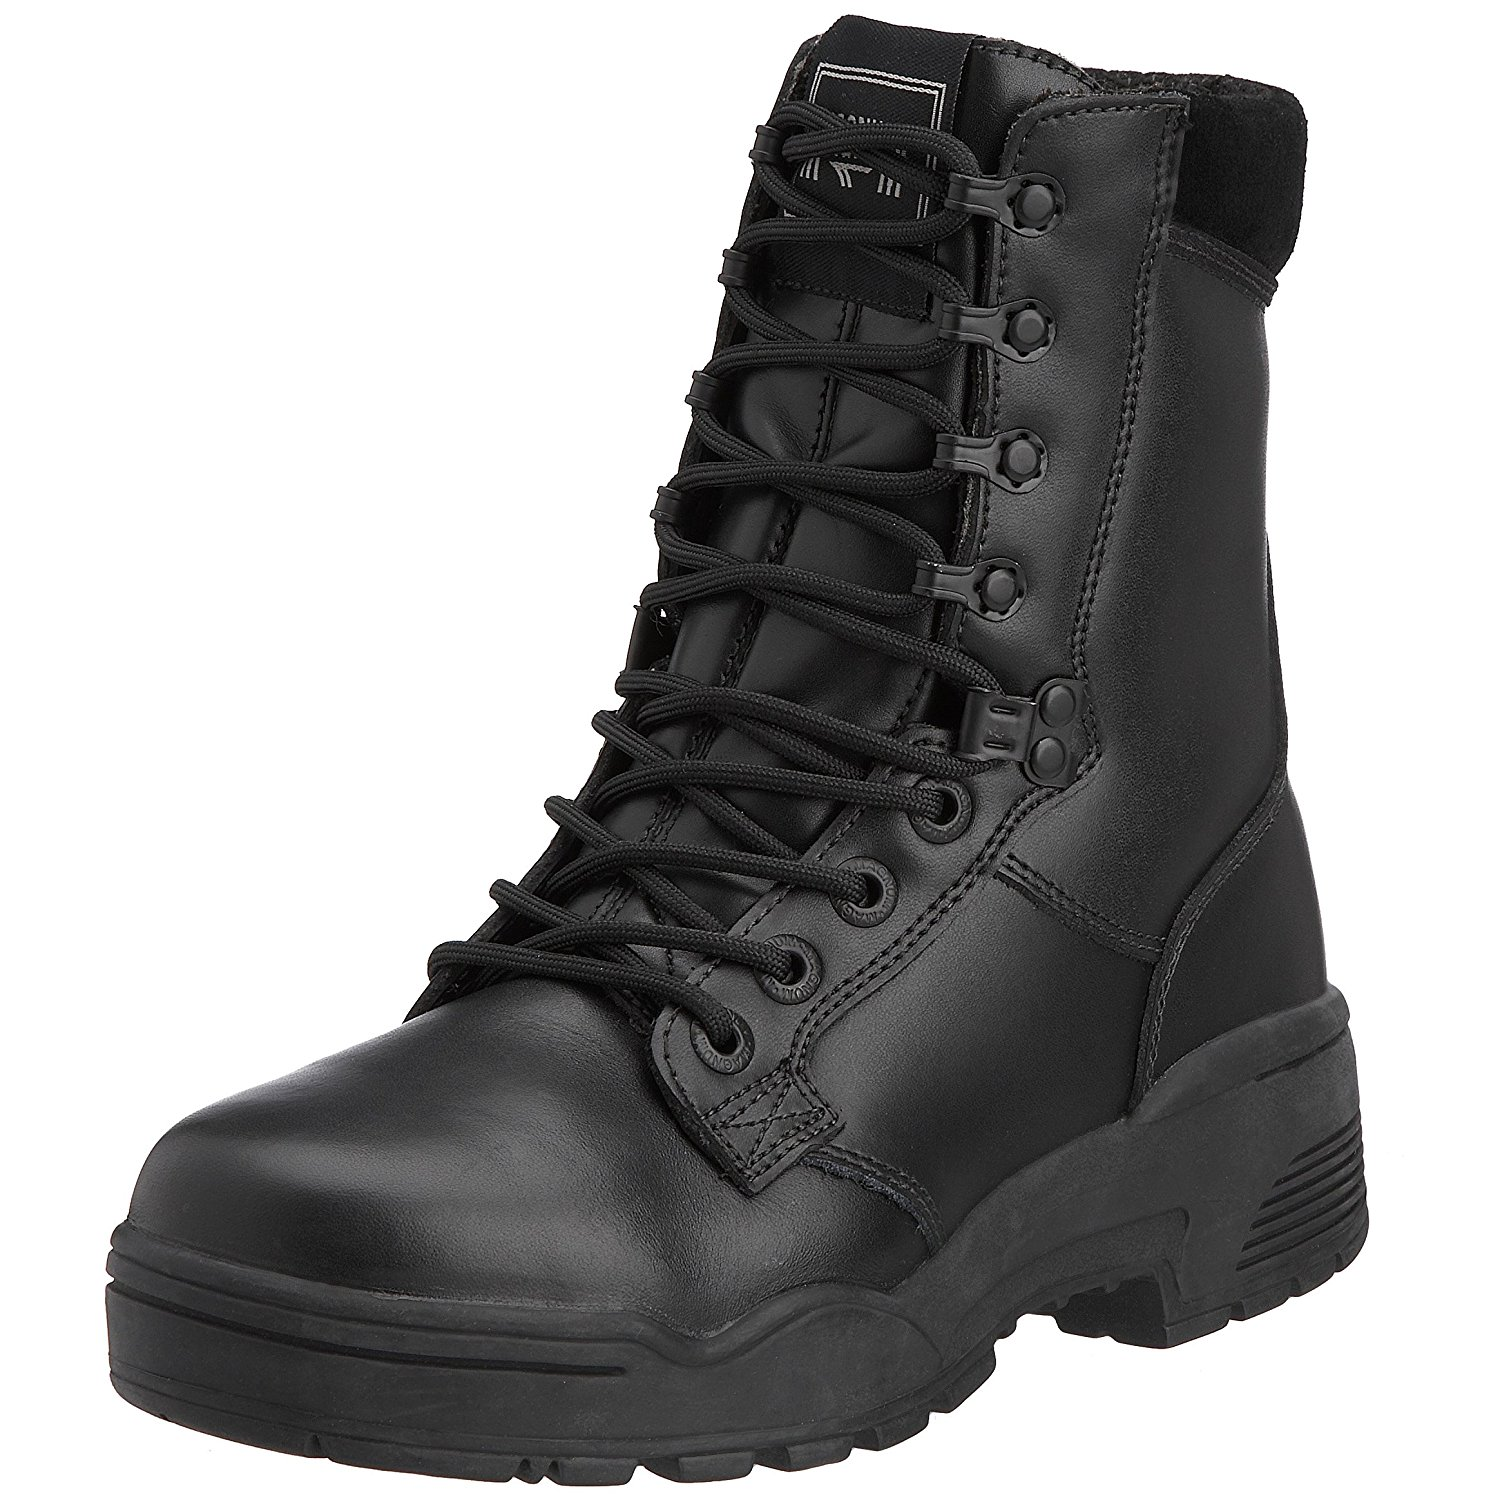 d320fb507df Magnum Safety Boots. UK Patrol boots